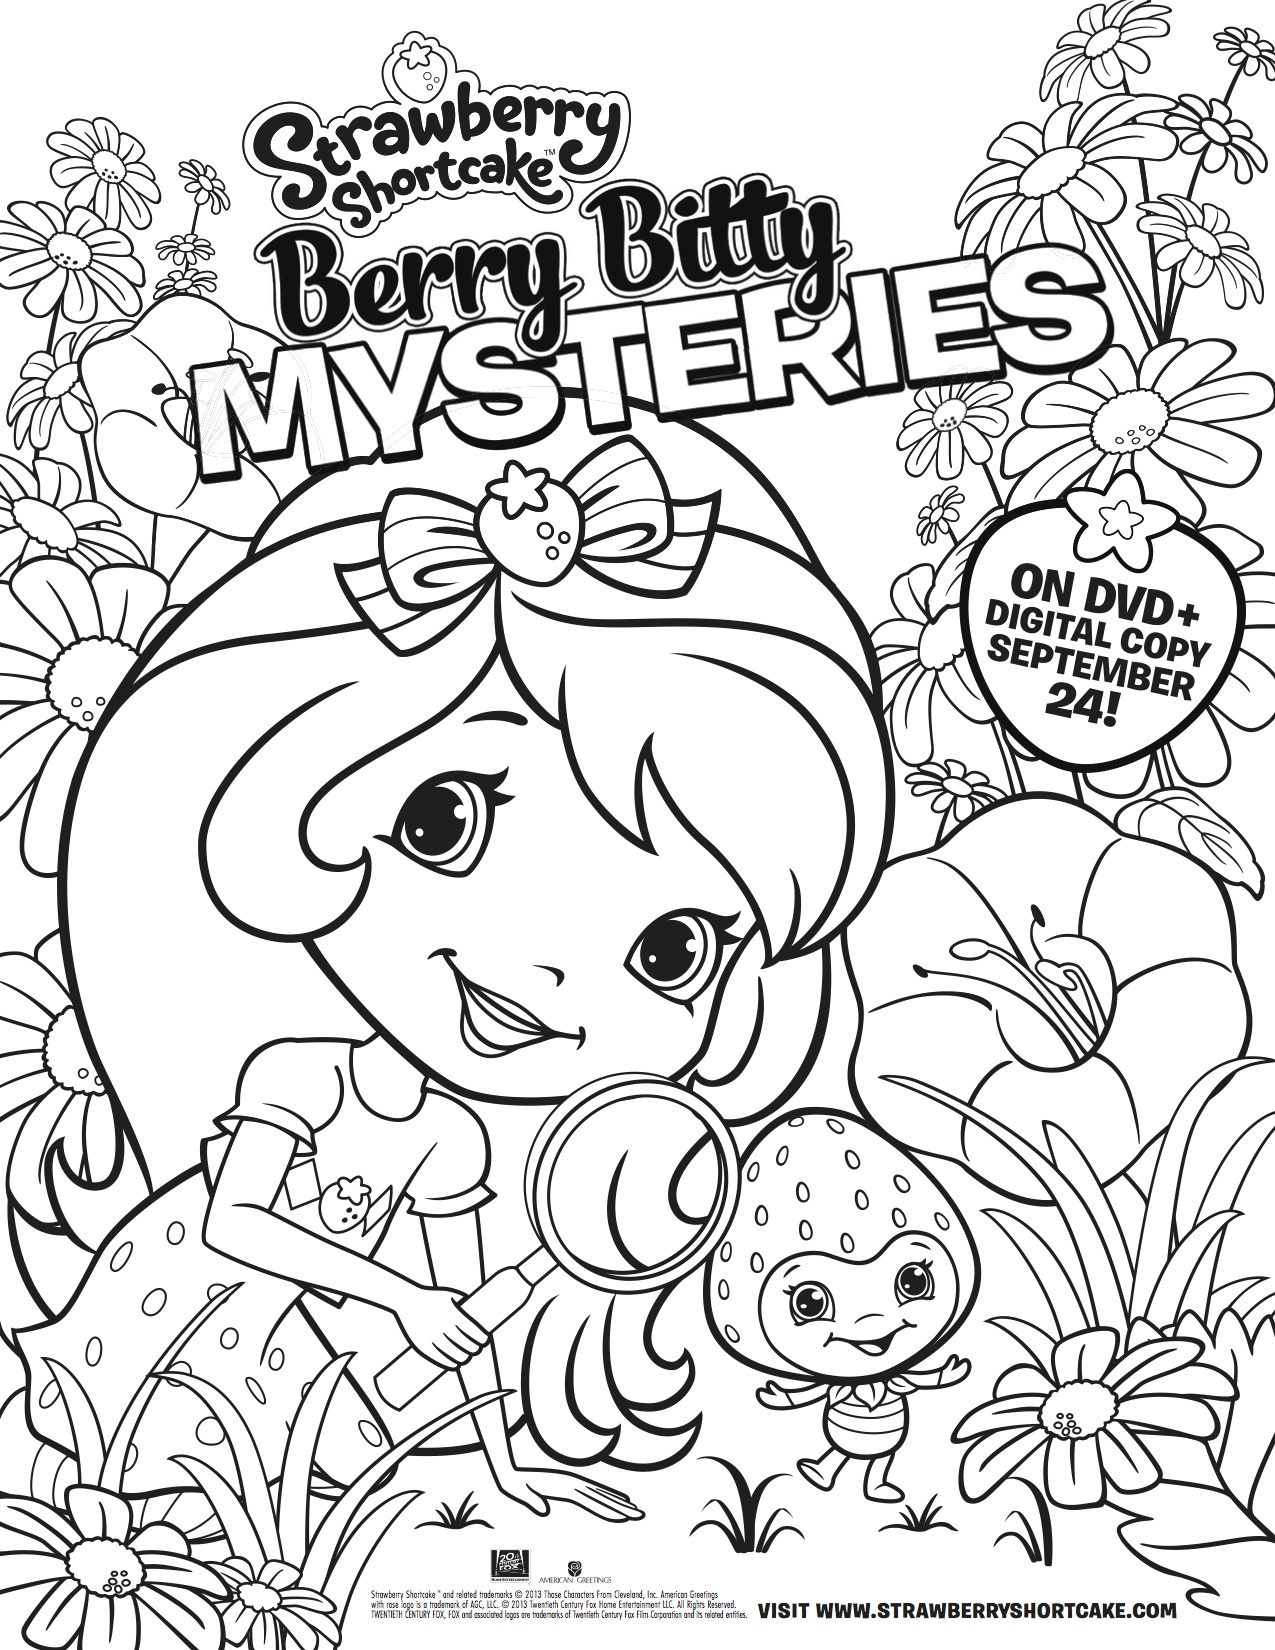 strawberry shortcake free coloring page - Strawberry Shortcake Coloring Pages